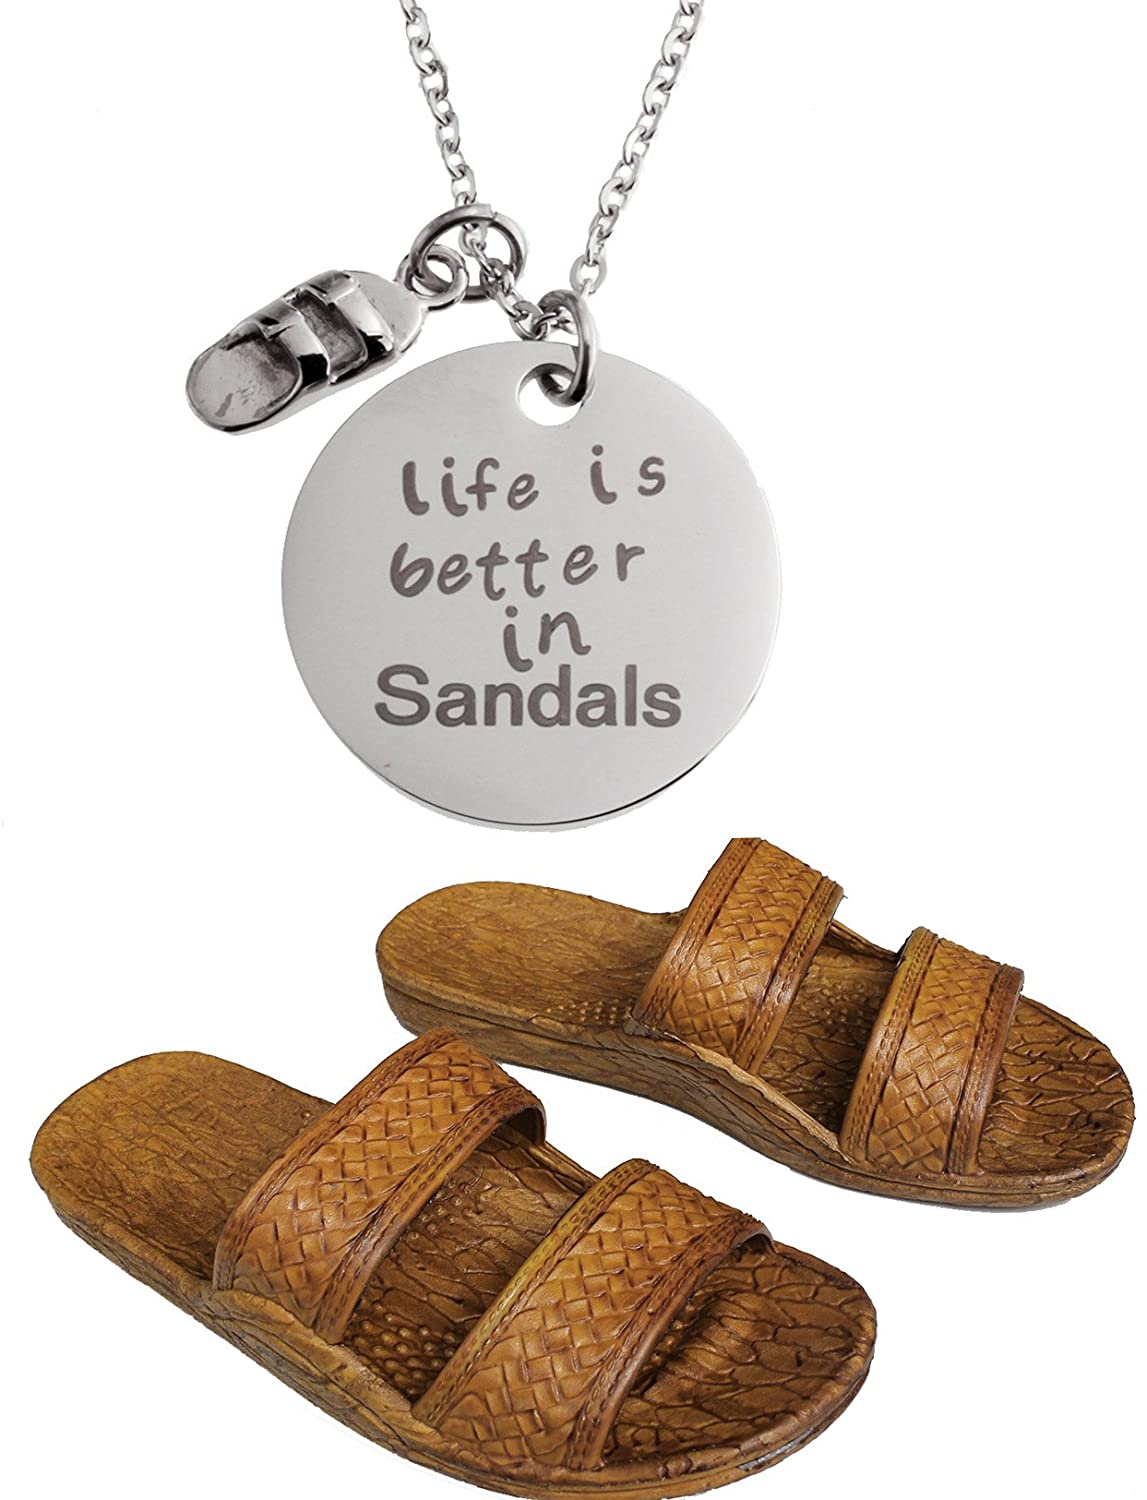 Brown Jesus Style Sandals - with 1 Stainless Steel Life is Better in Sandals Pendant Necklace Bundle - 2 Items